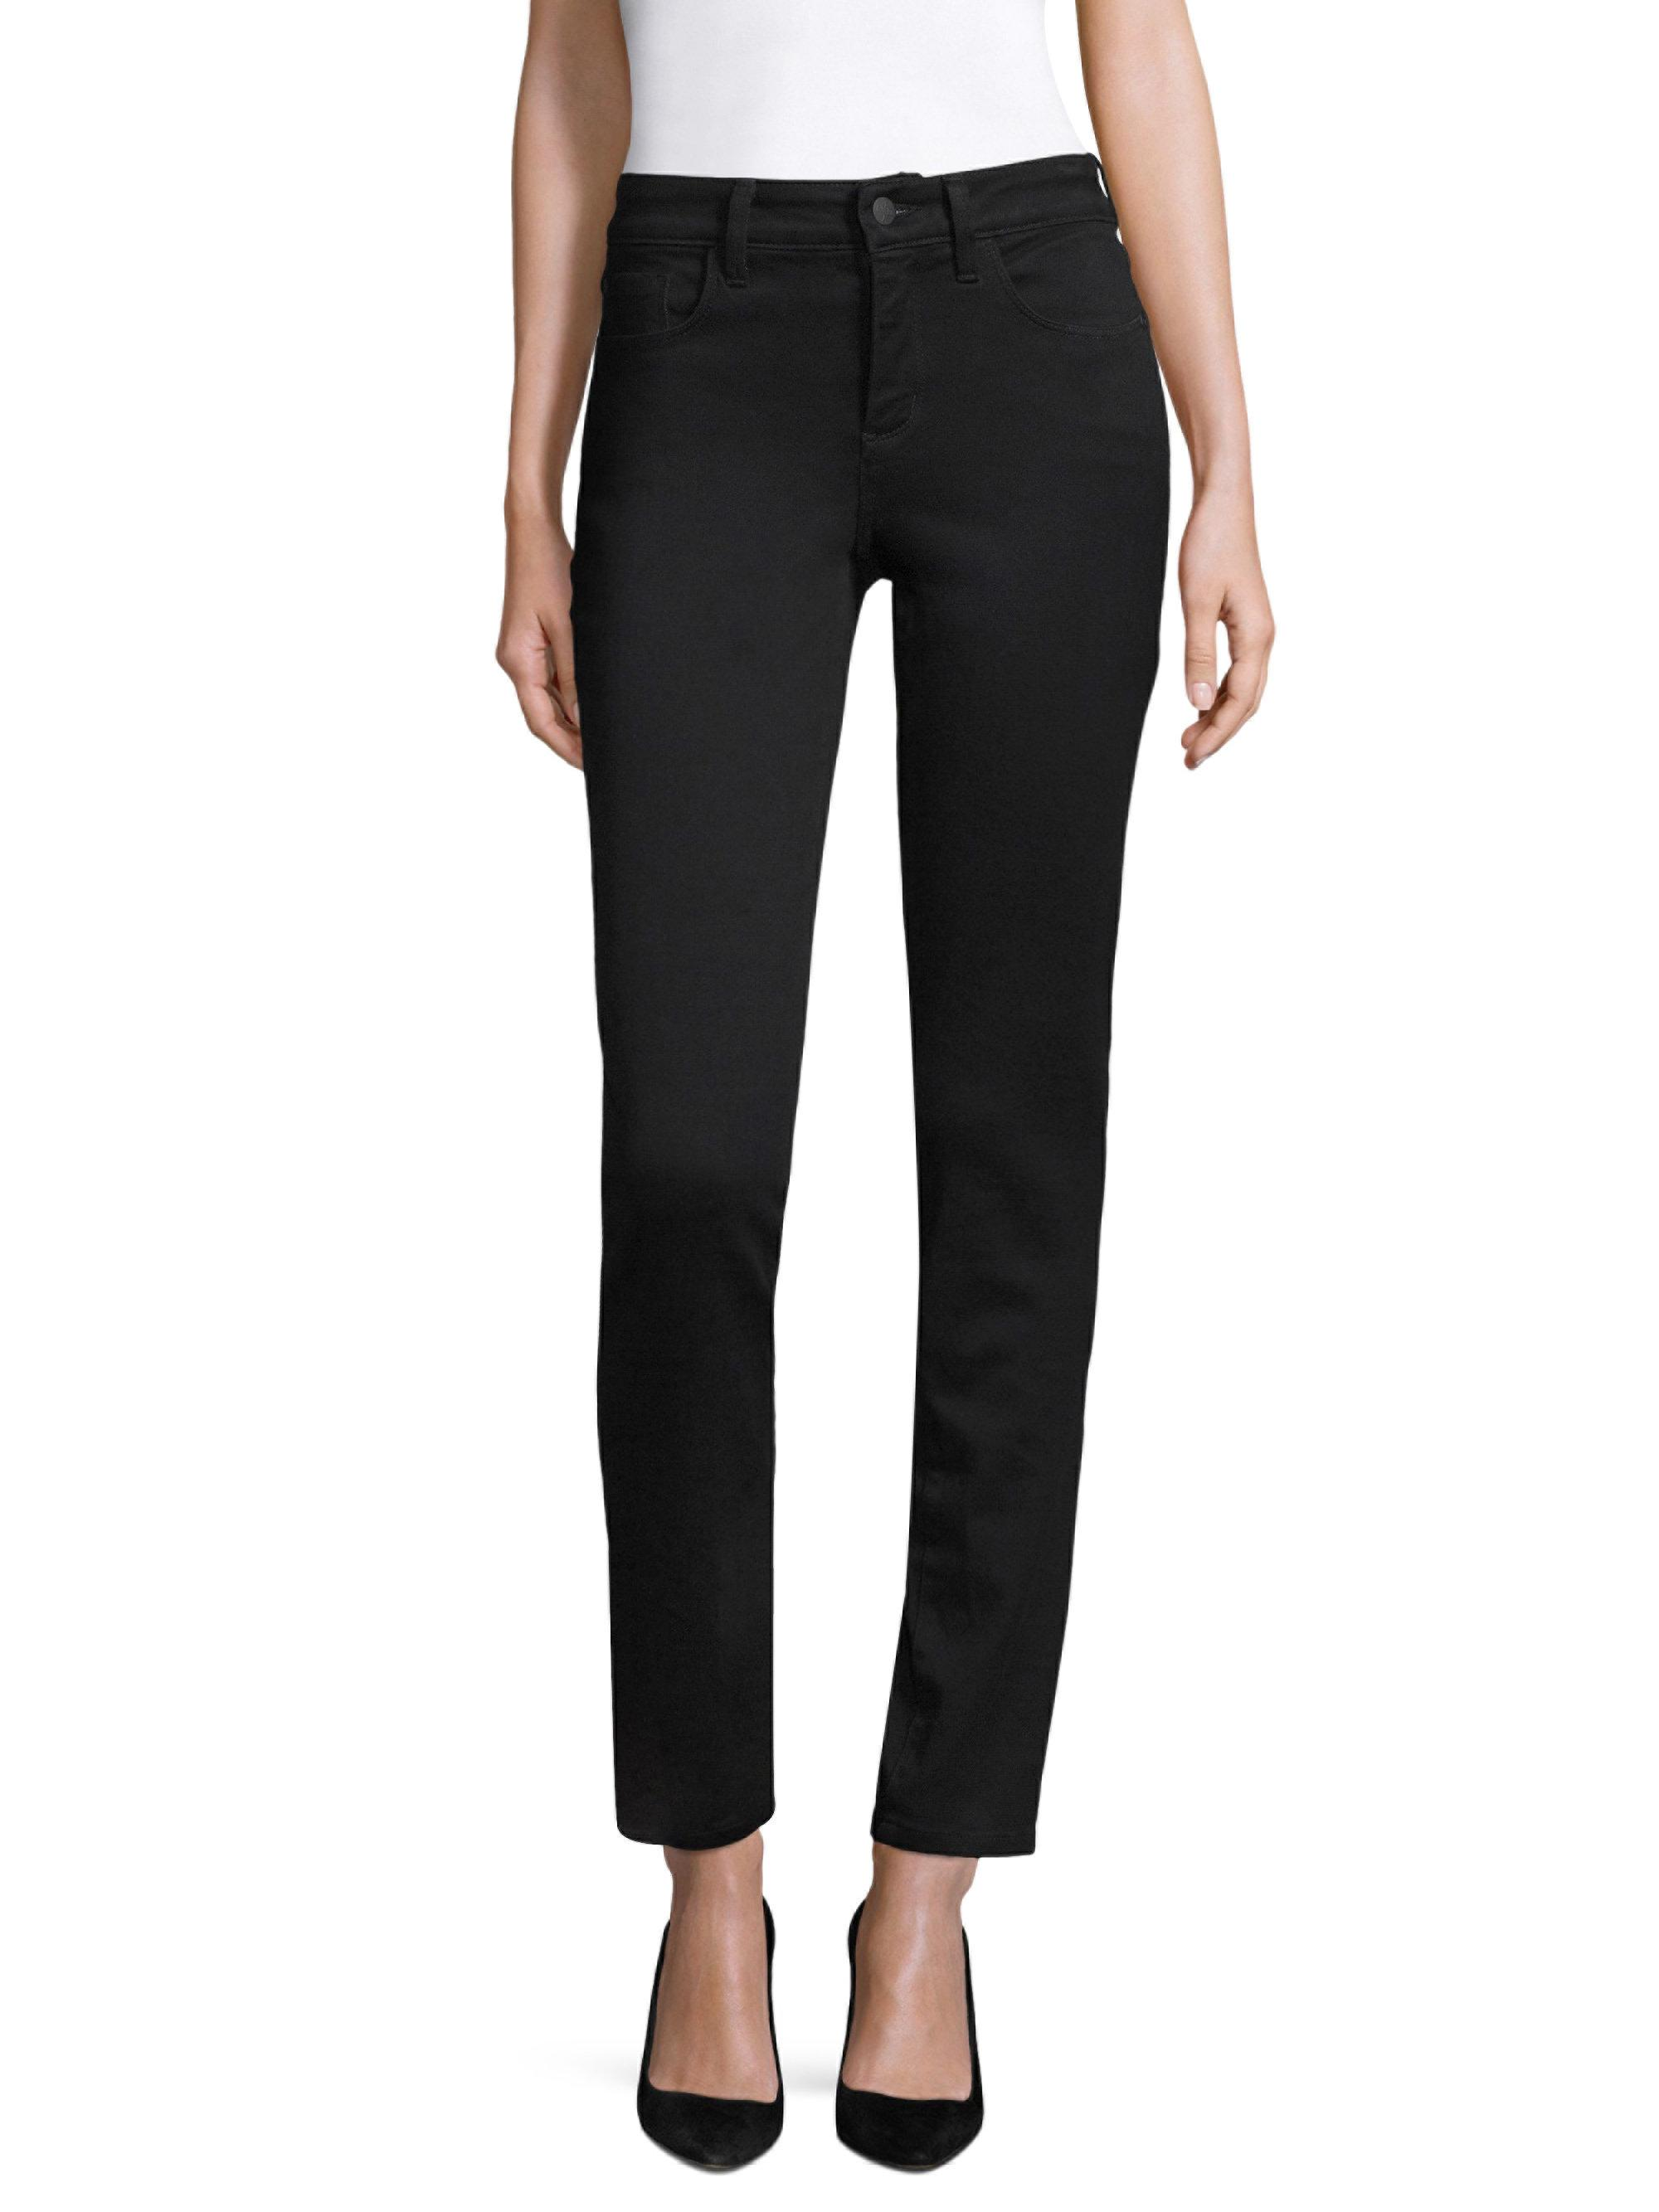 Buy Standards & Practices Women's Black Coated Stretch Denim Cropped Skinny Jeans and other Jeans at hereufilbk.gq Our wide selection is elegible for free shipping and free returns/5(2).